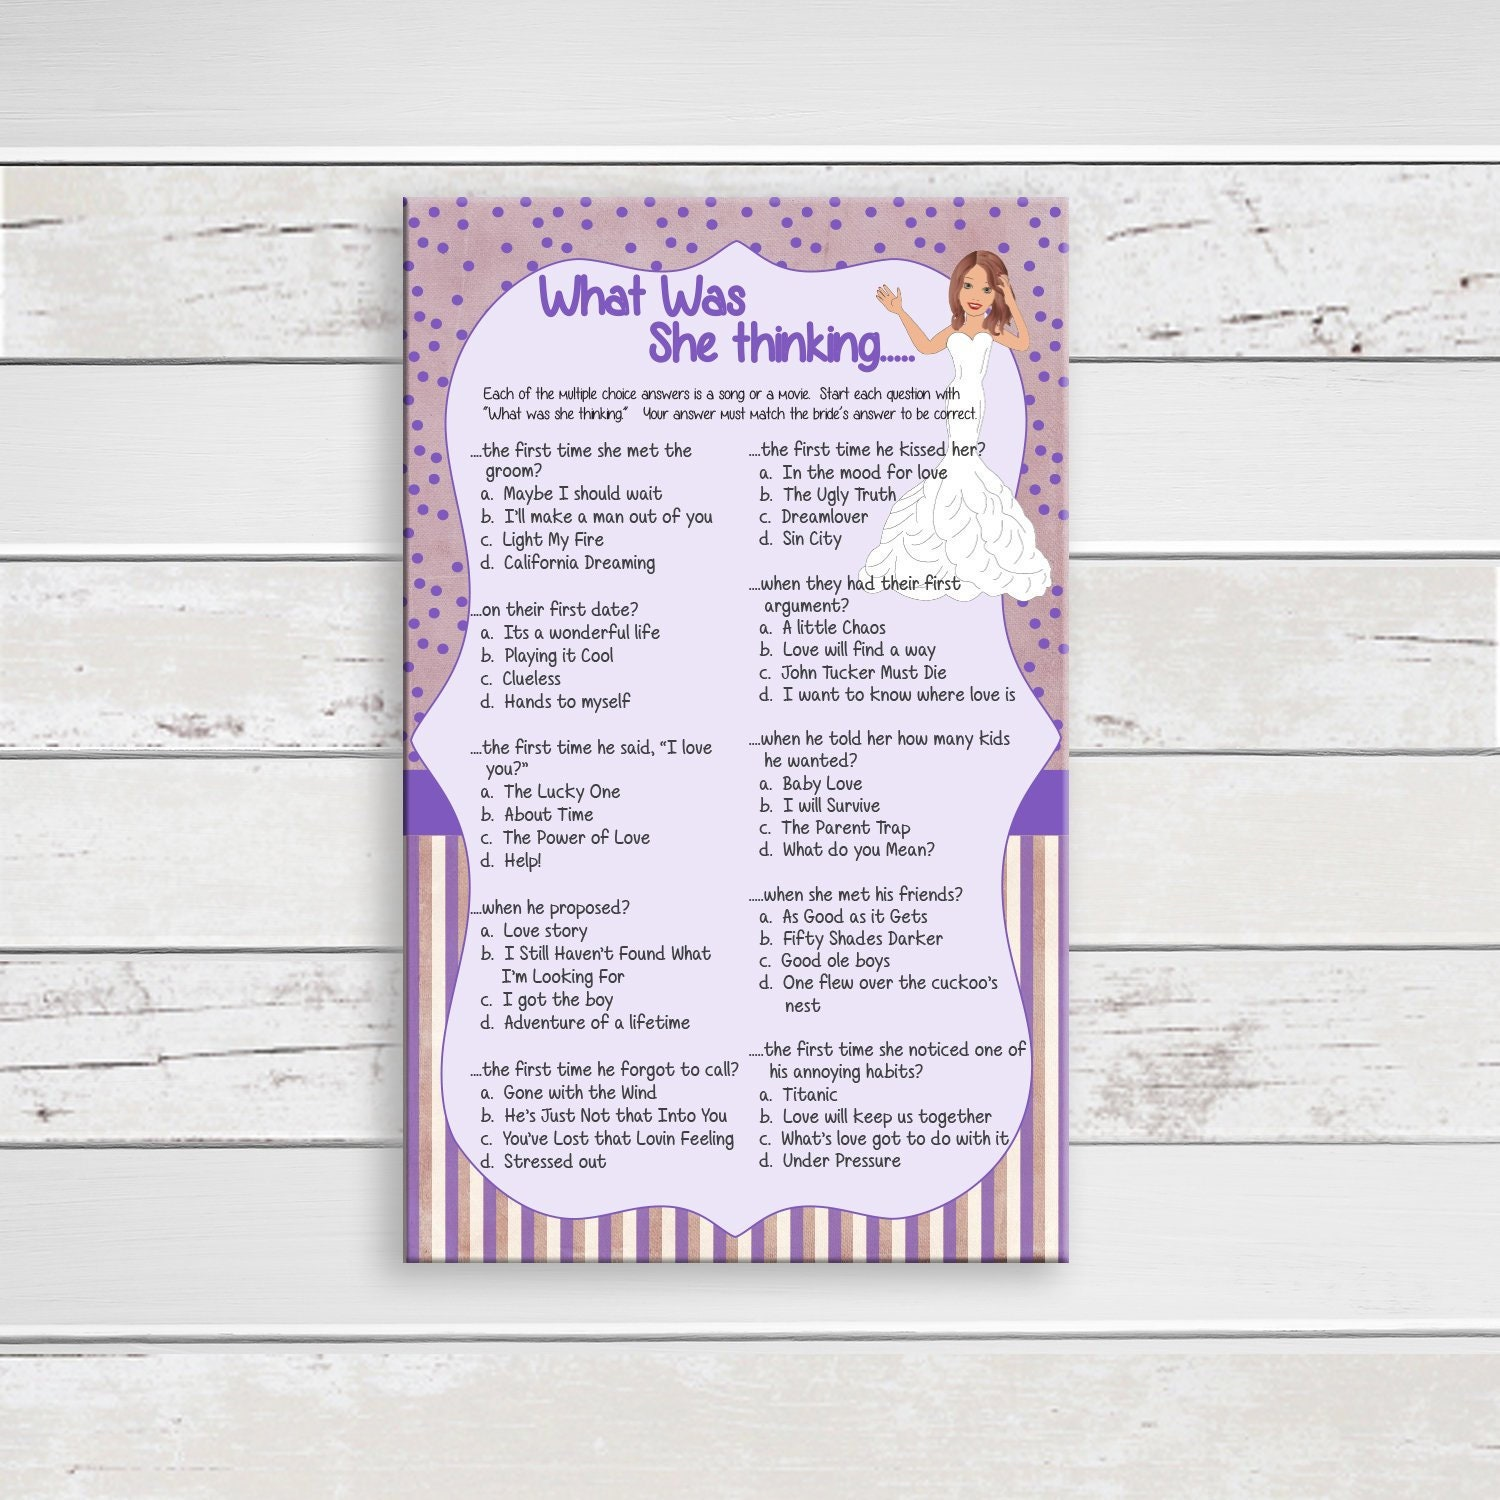 c014abba1bb What was she Thinking Bridal Shower Game Wedding Shower Game